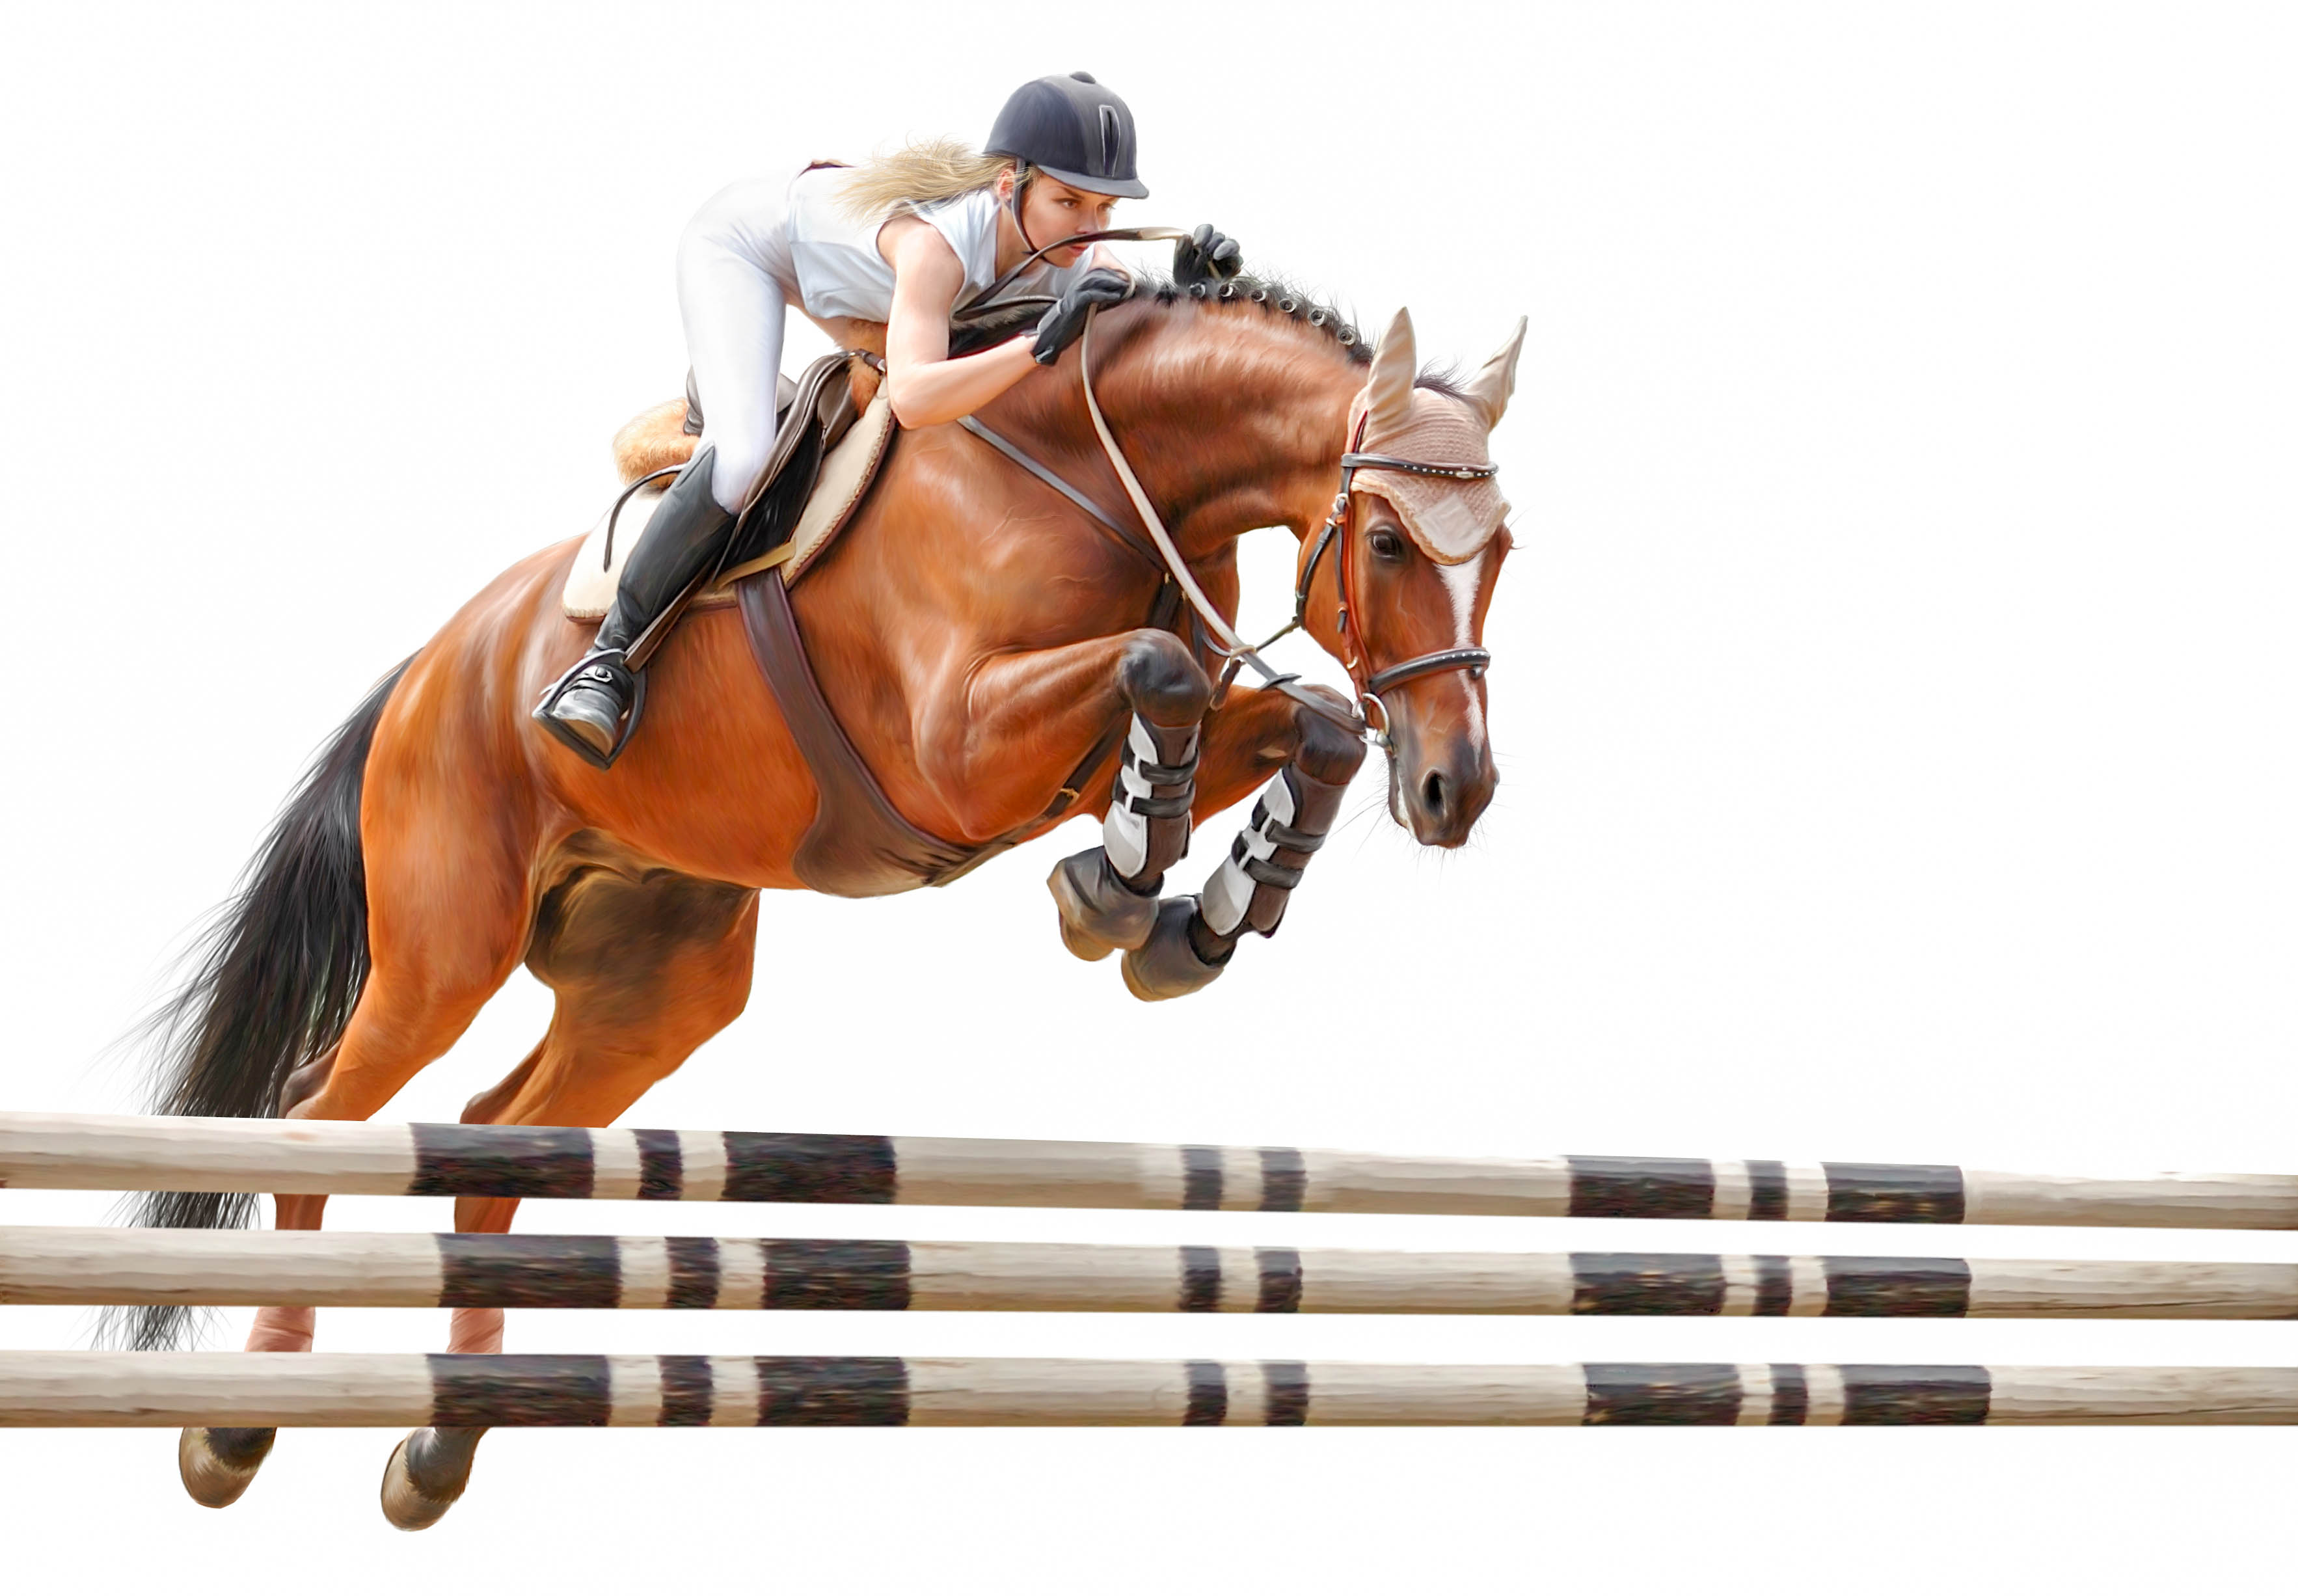 3532x2453 - Show Jumping Wallpapers 30